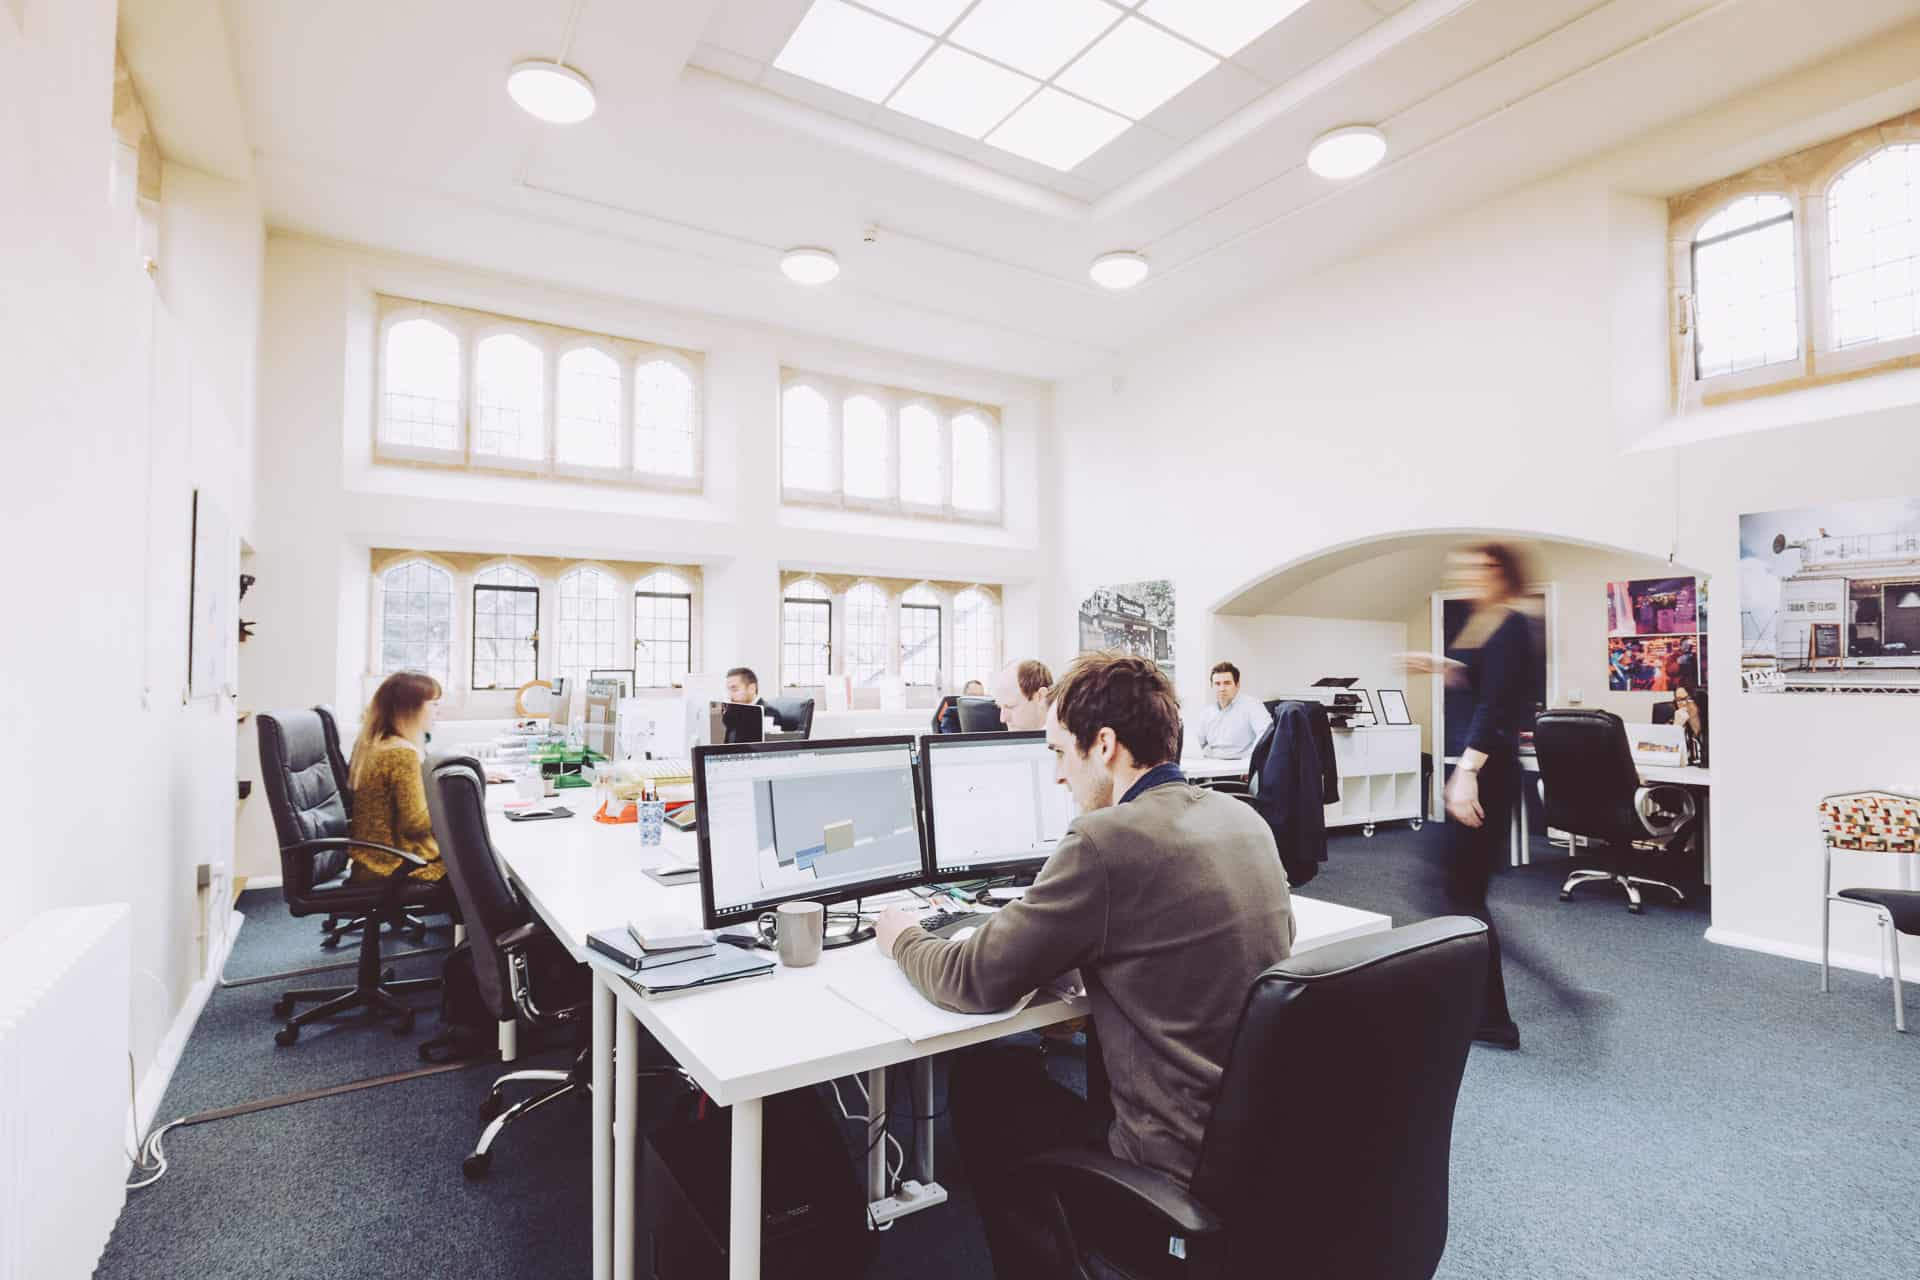 The Hawkins Laboratory, Old Cathedral School - ISO Spaces HQ